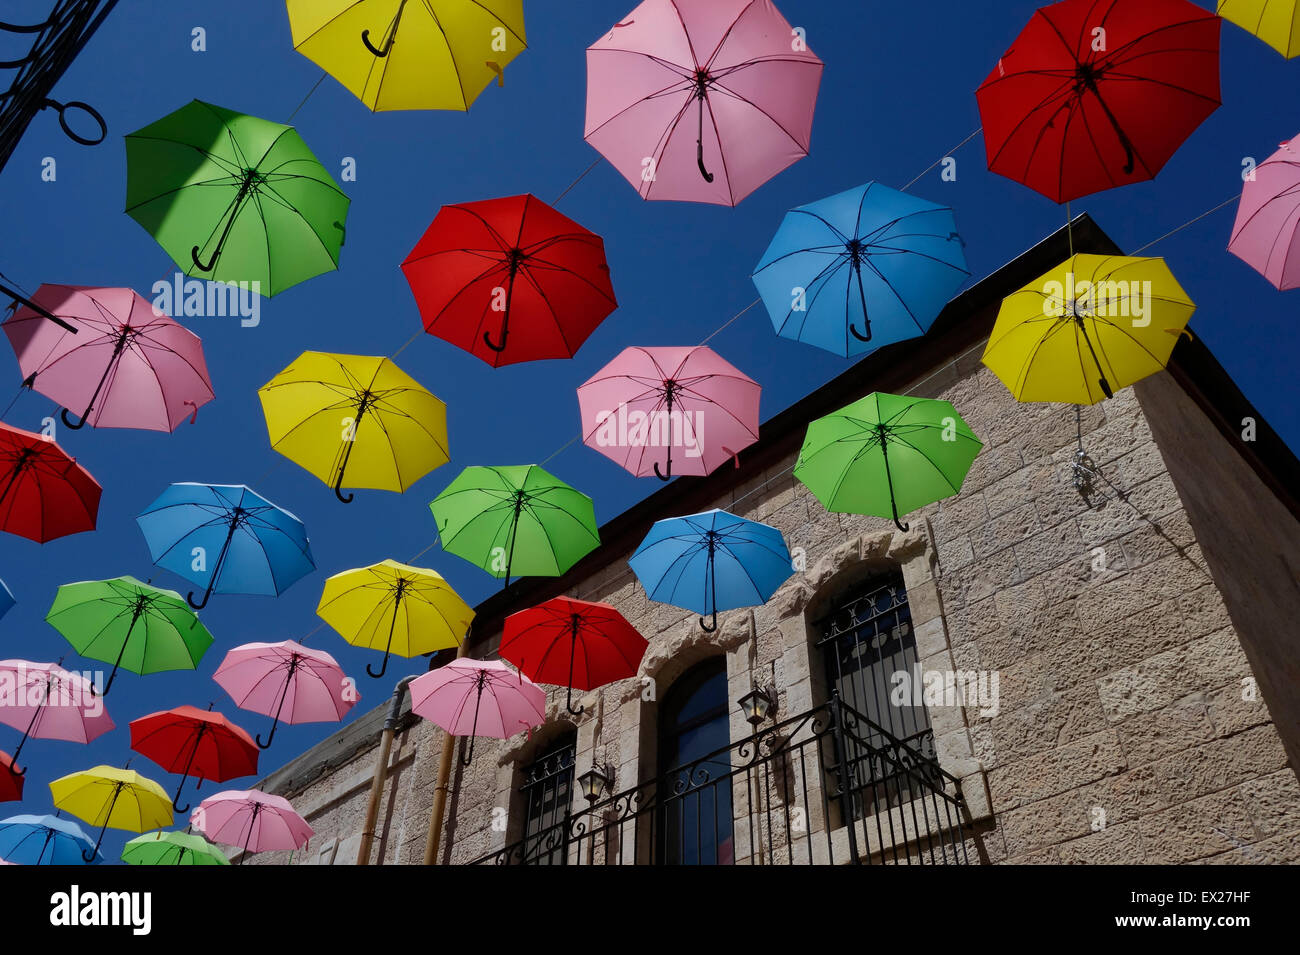 Colorful umbrellas are suspended above Nahalat Shiva alley a pedestrian promenade in West Jerusalem Israel - Stock Image